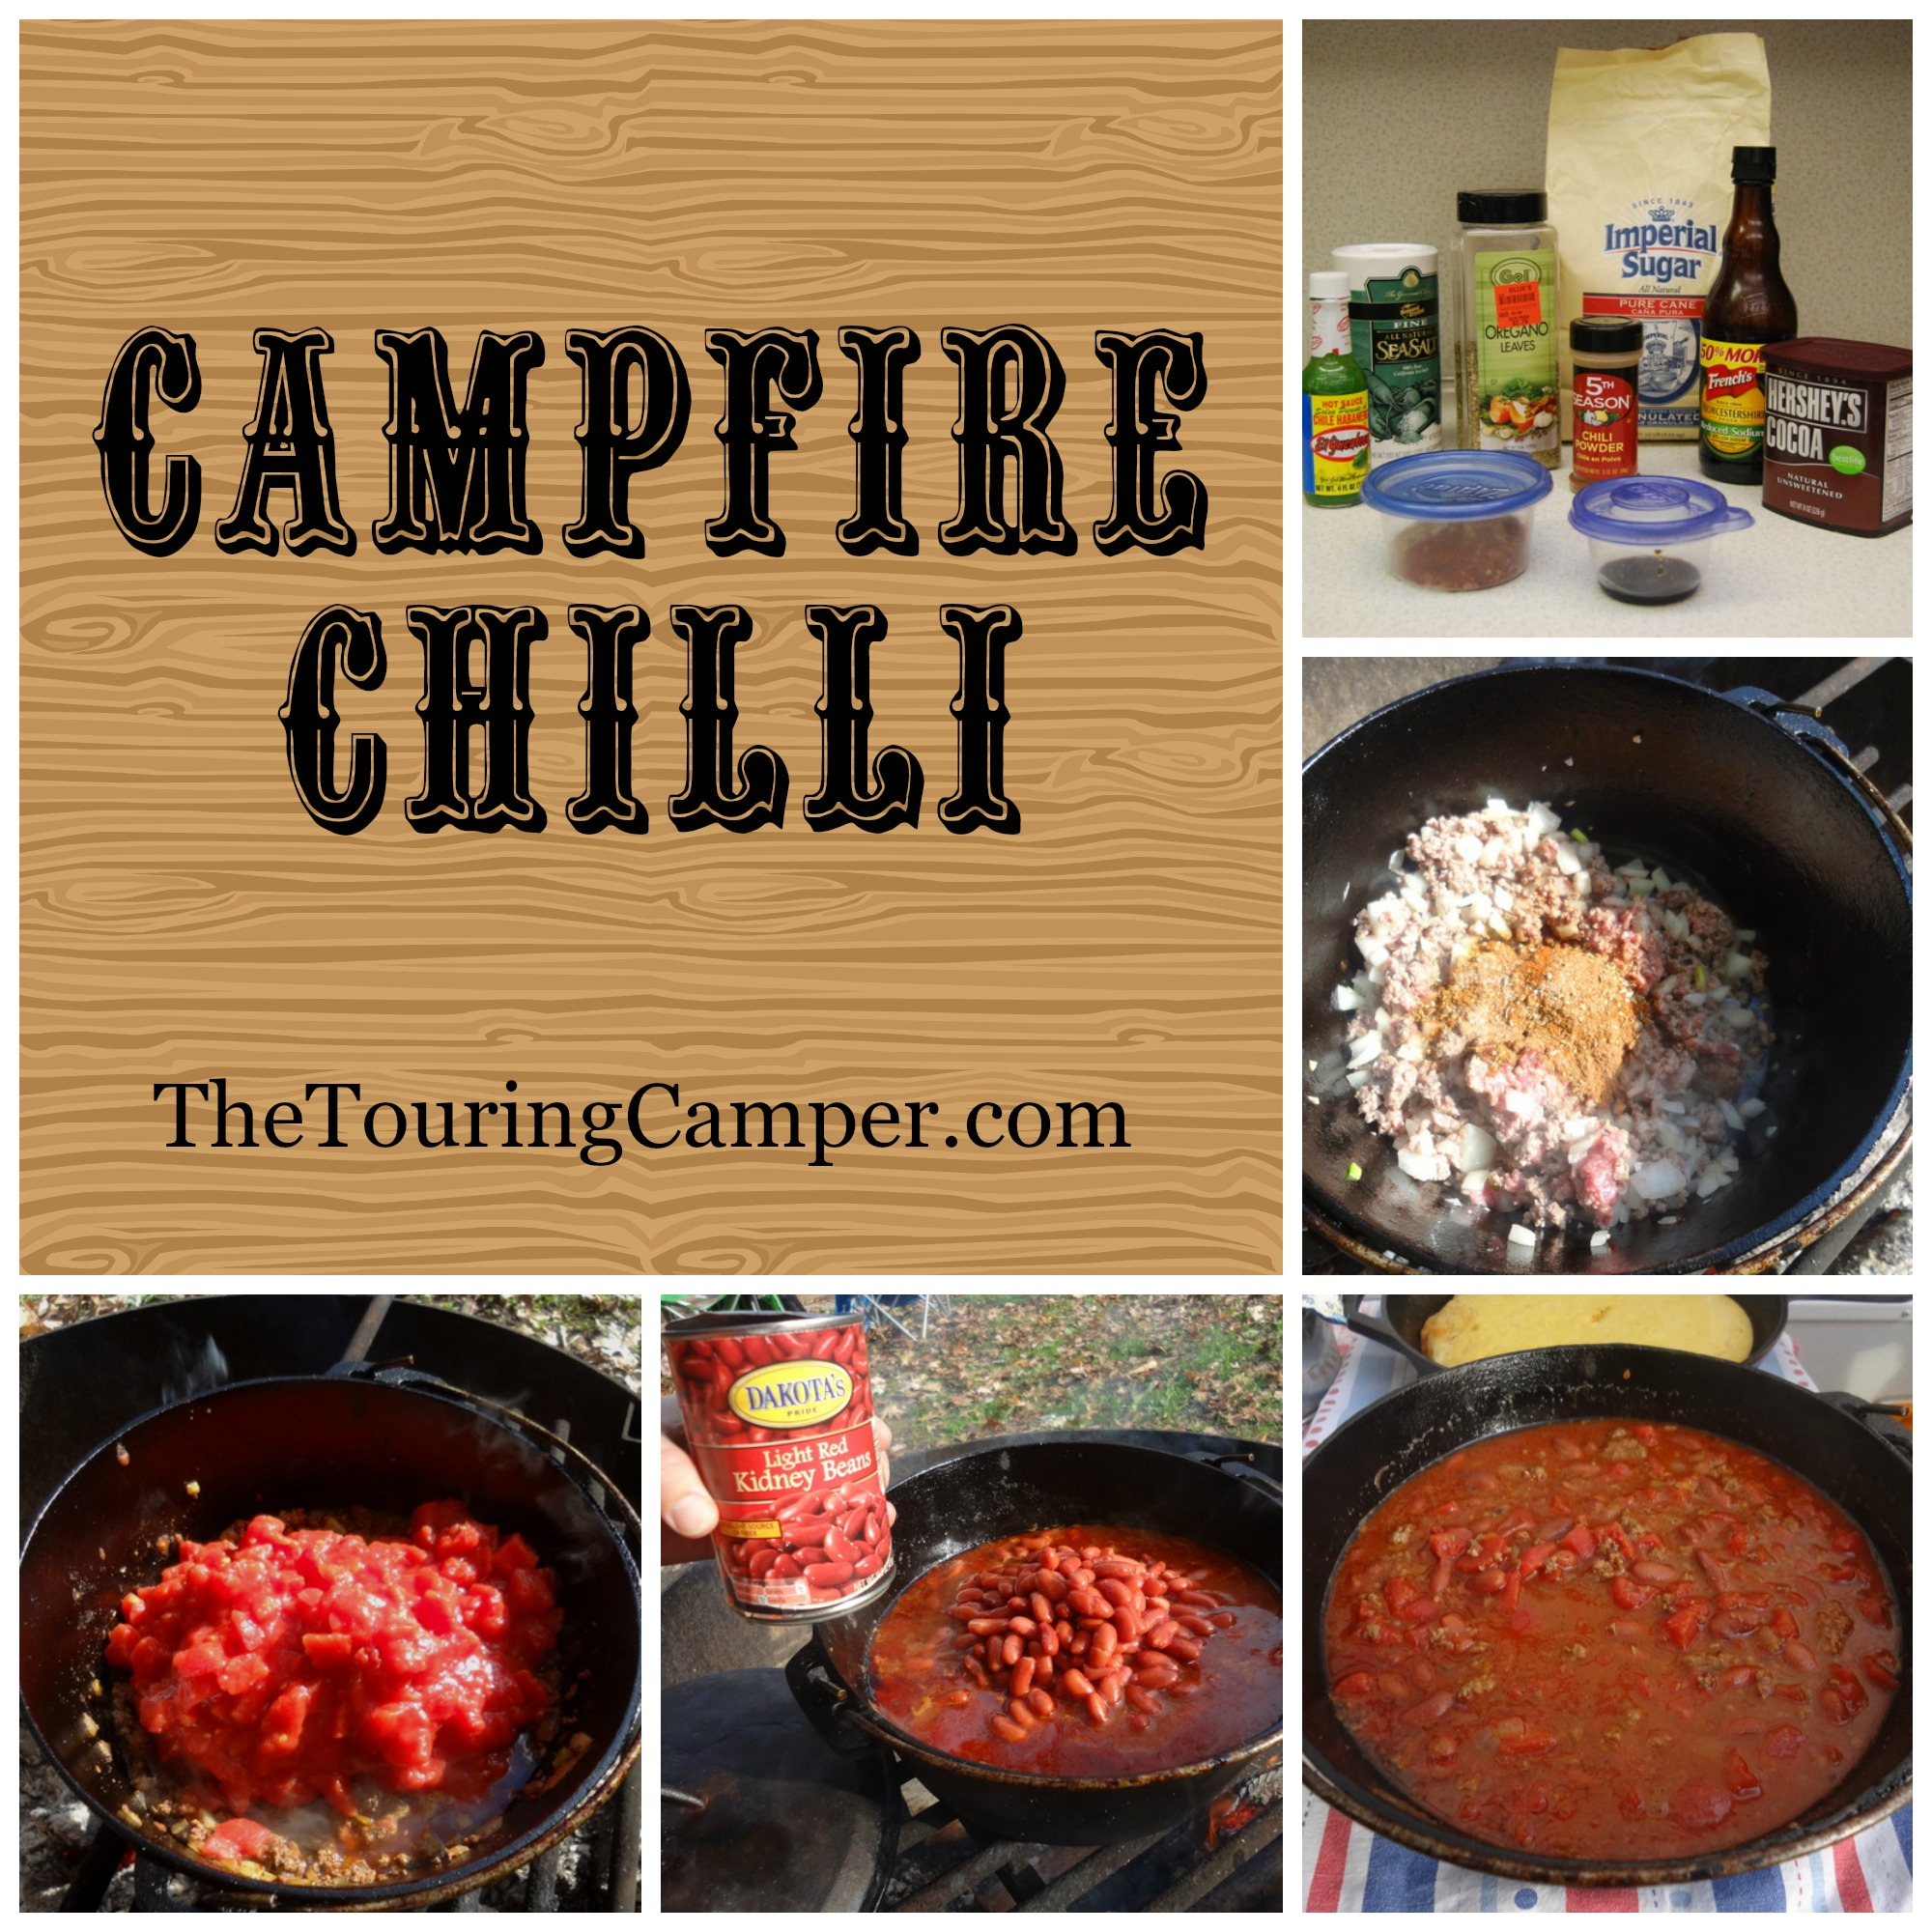 Campfire Chilli collage